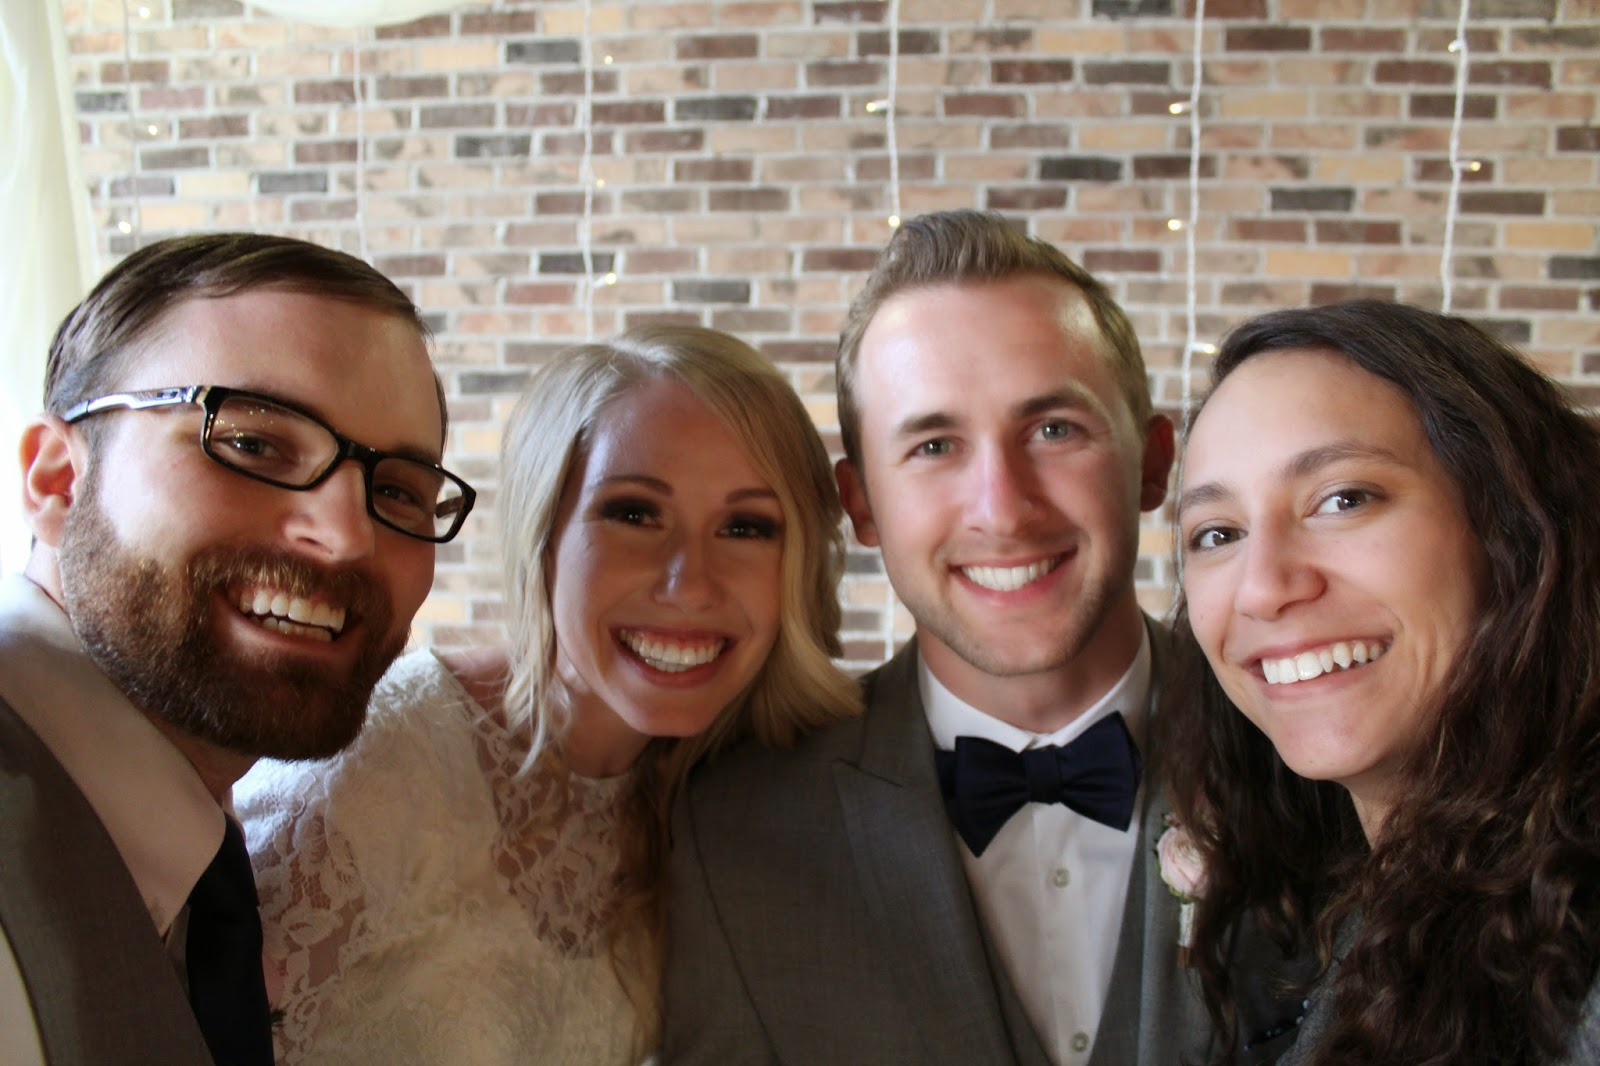 selfie with the newlyweds